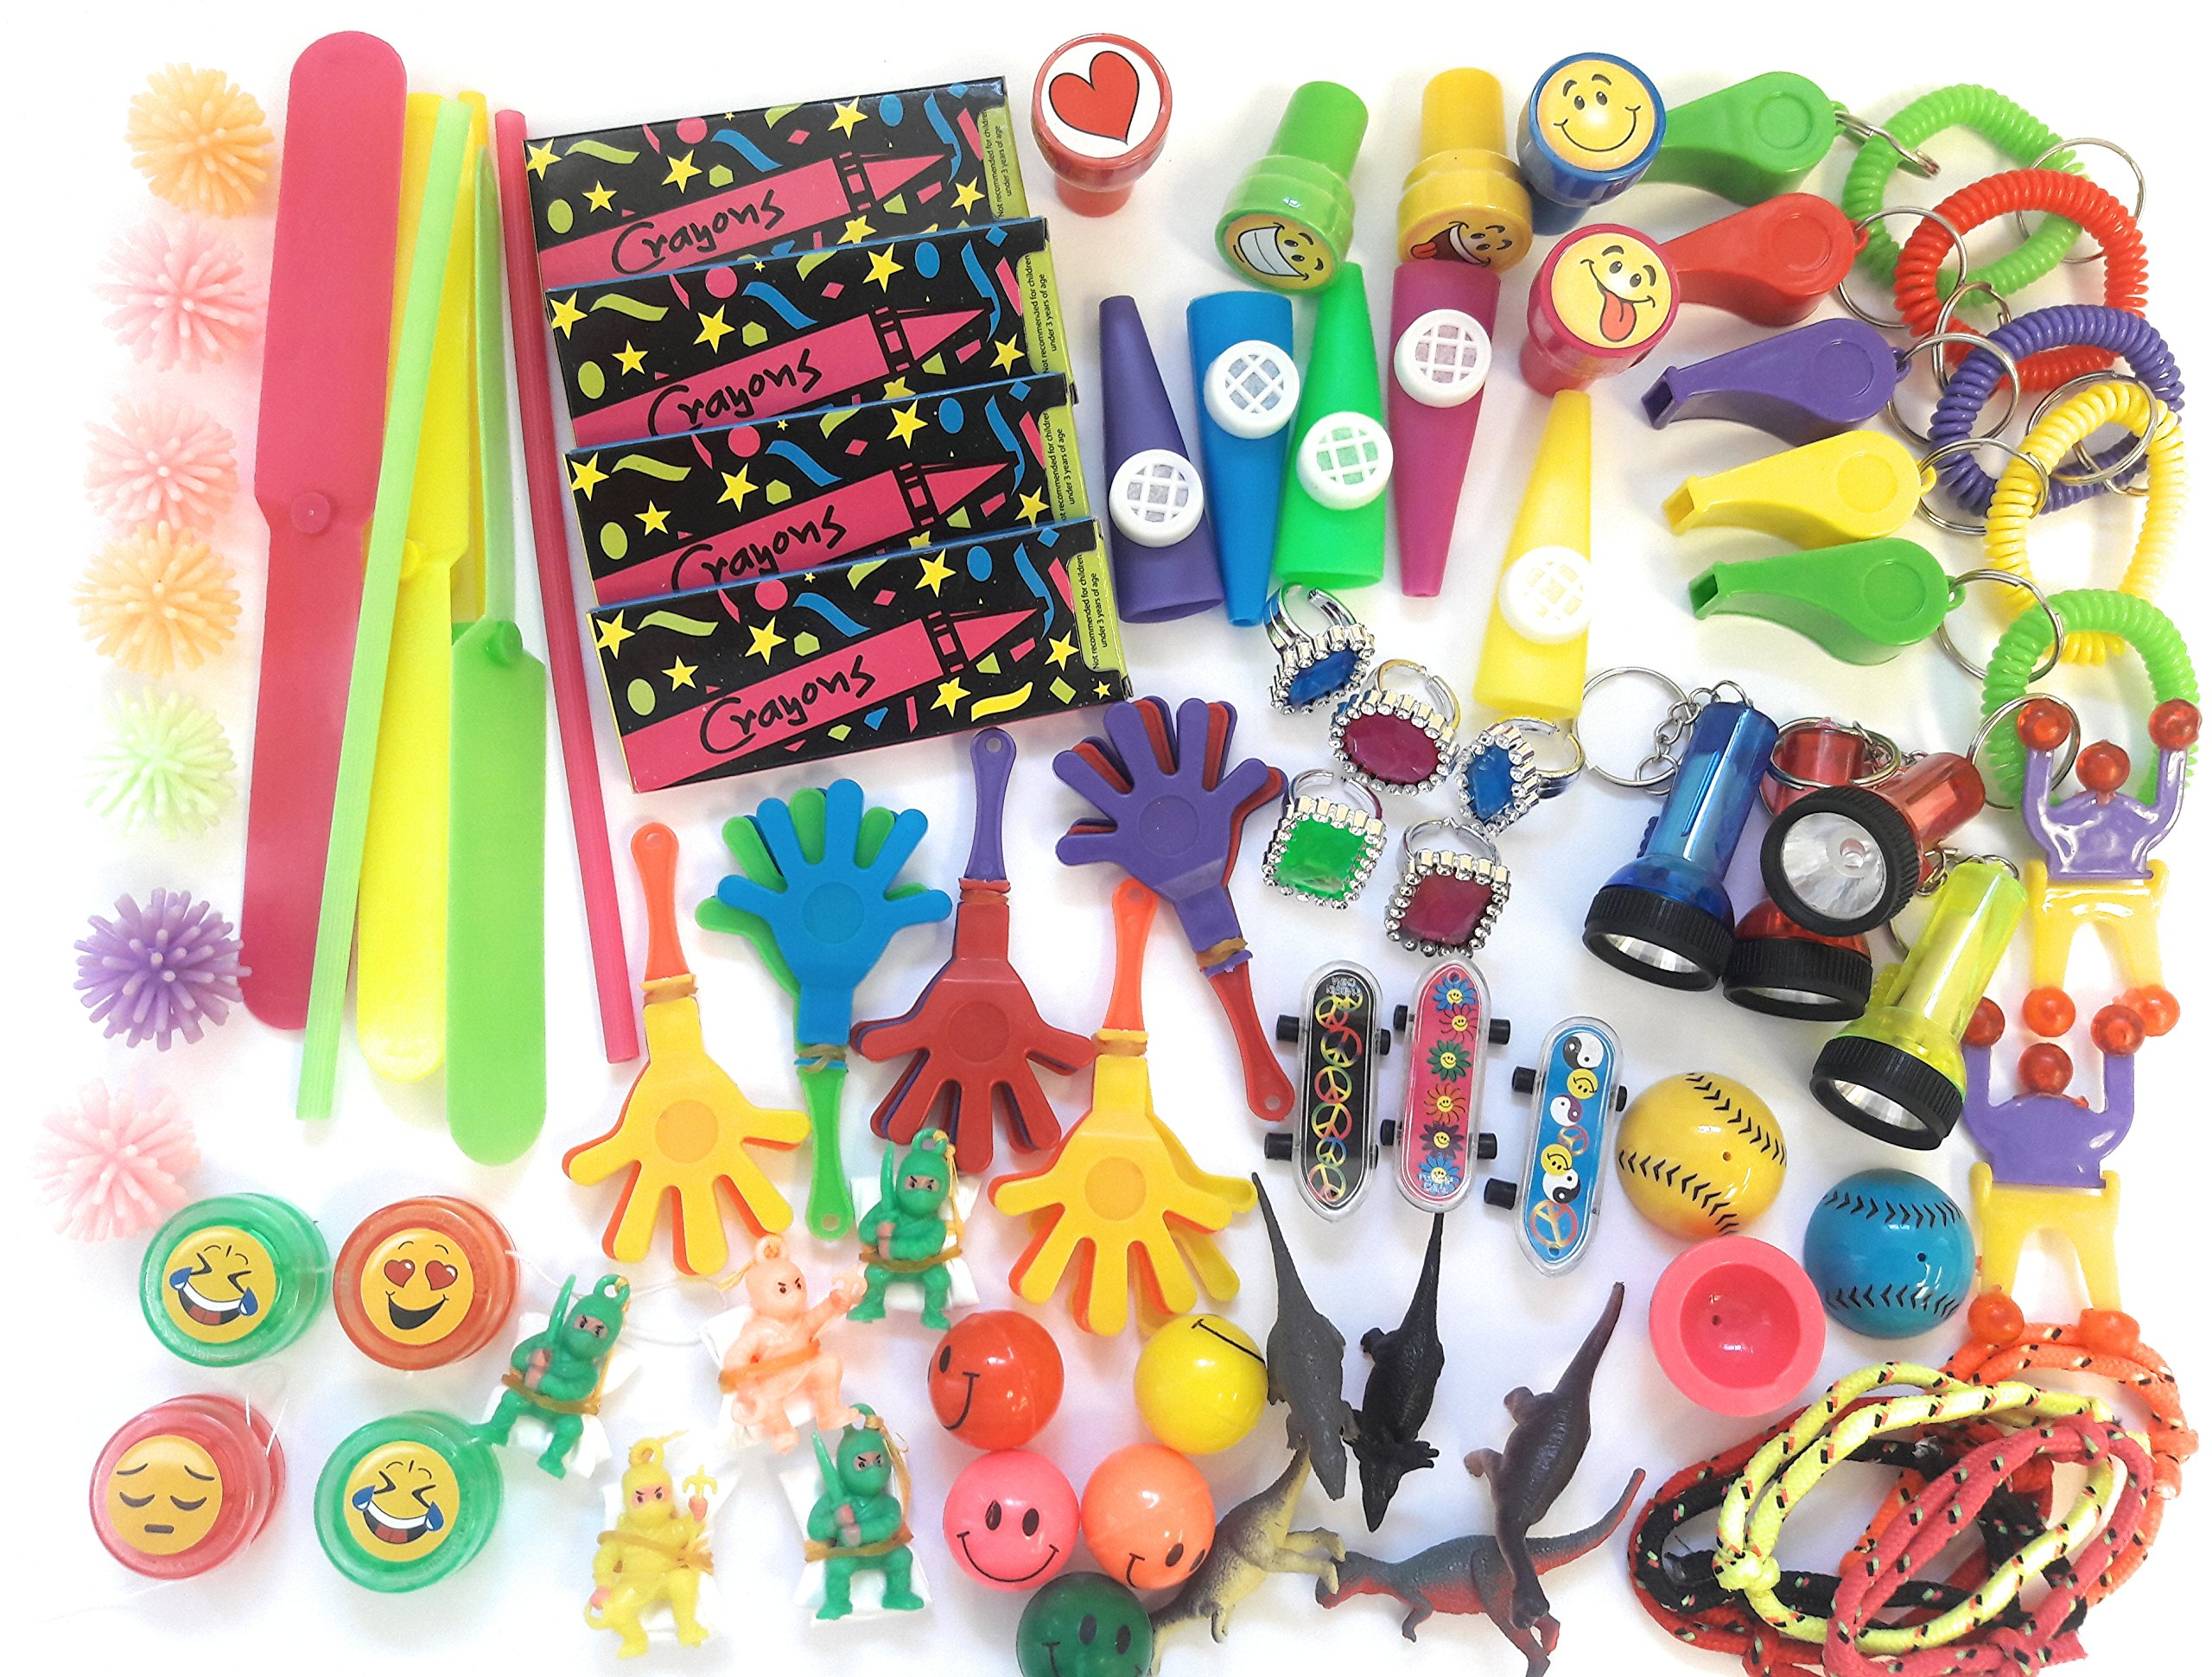 Bulk Toys Party Favors Toy Assortment Kids Jumbo 120 Piece Favor Small Toy Assortments Birthday Party Bags Fillers Pinata Prize Carnival Claw Game School Dentist Doctor Rewards Stocking Stuffer by TSF TOYS (Image #3)